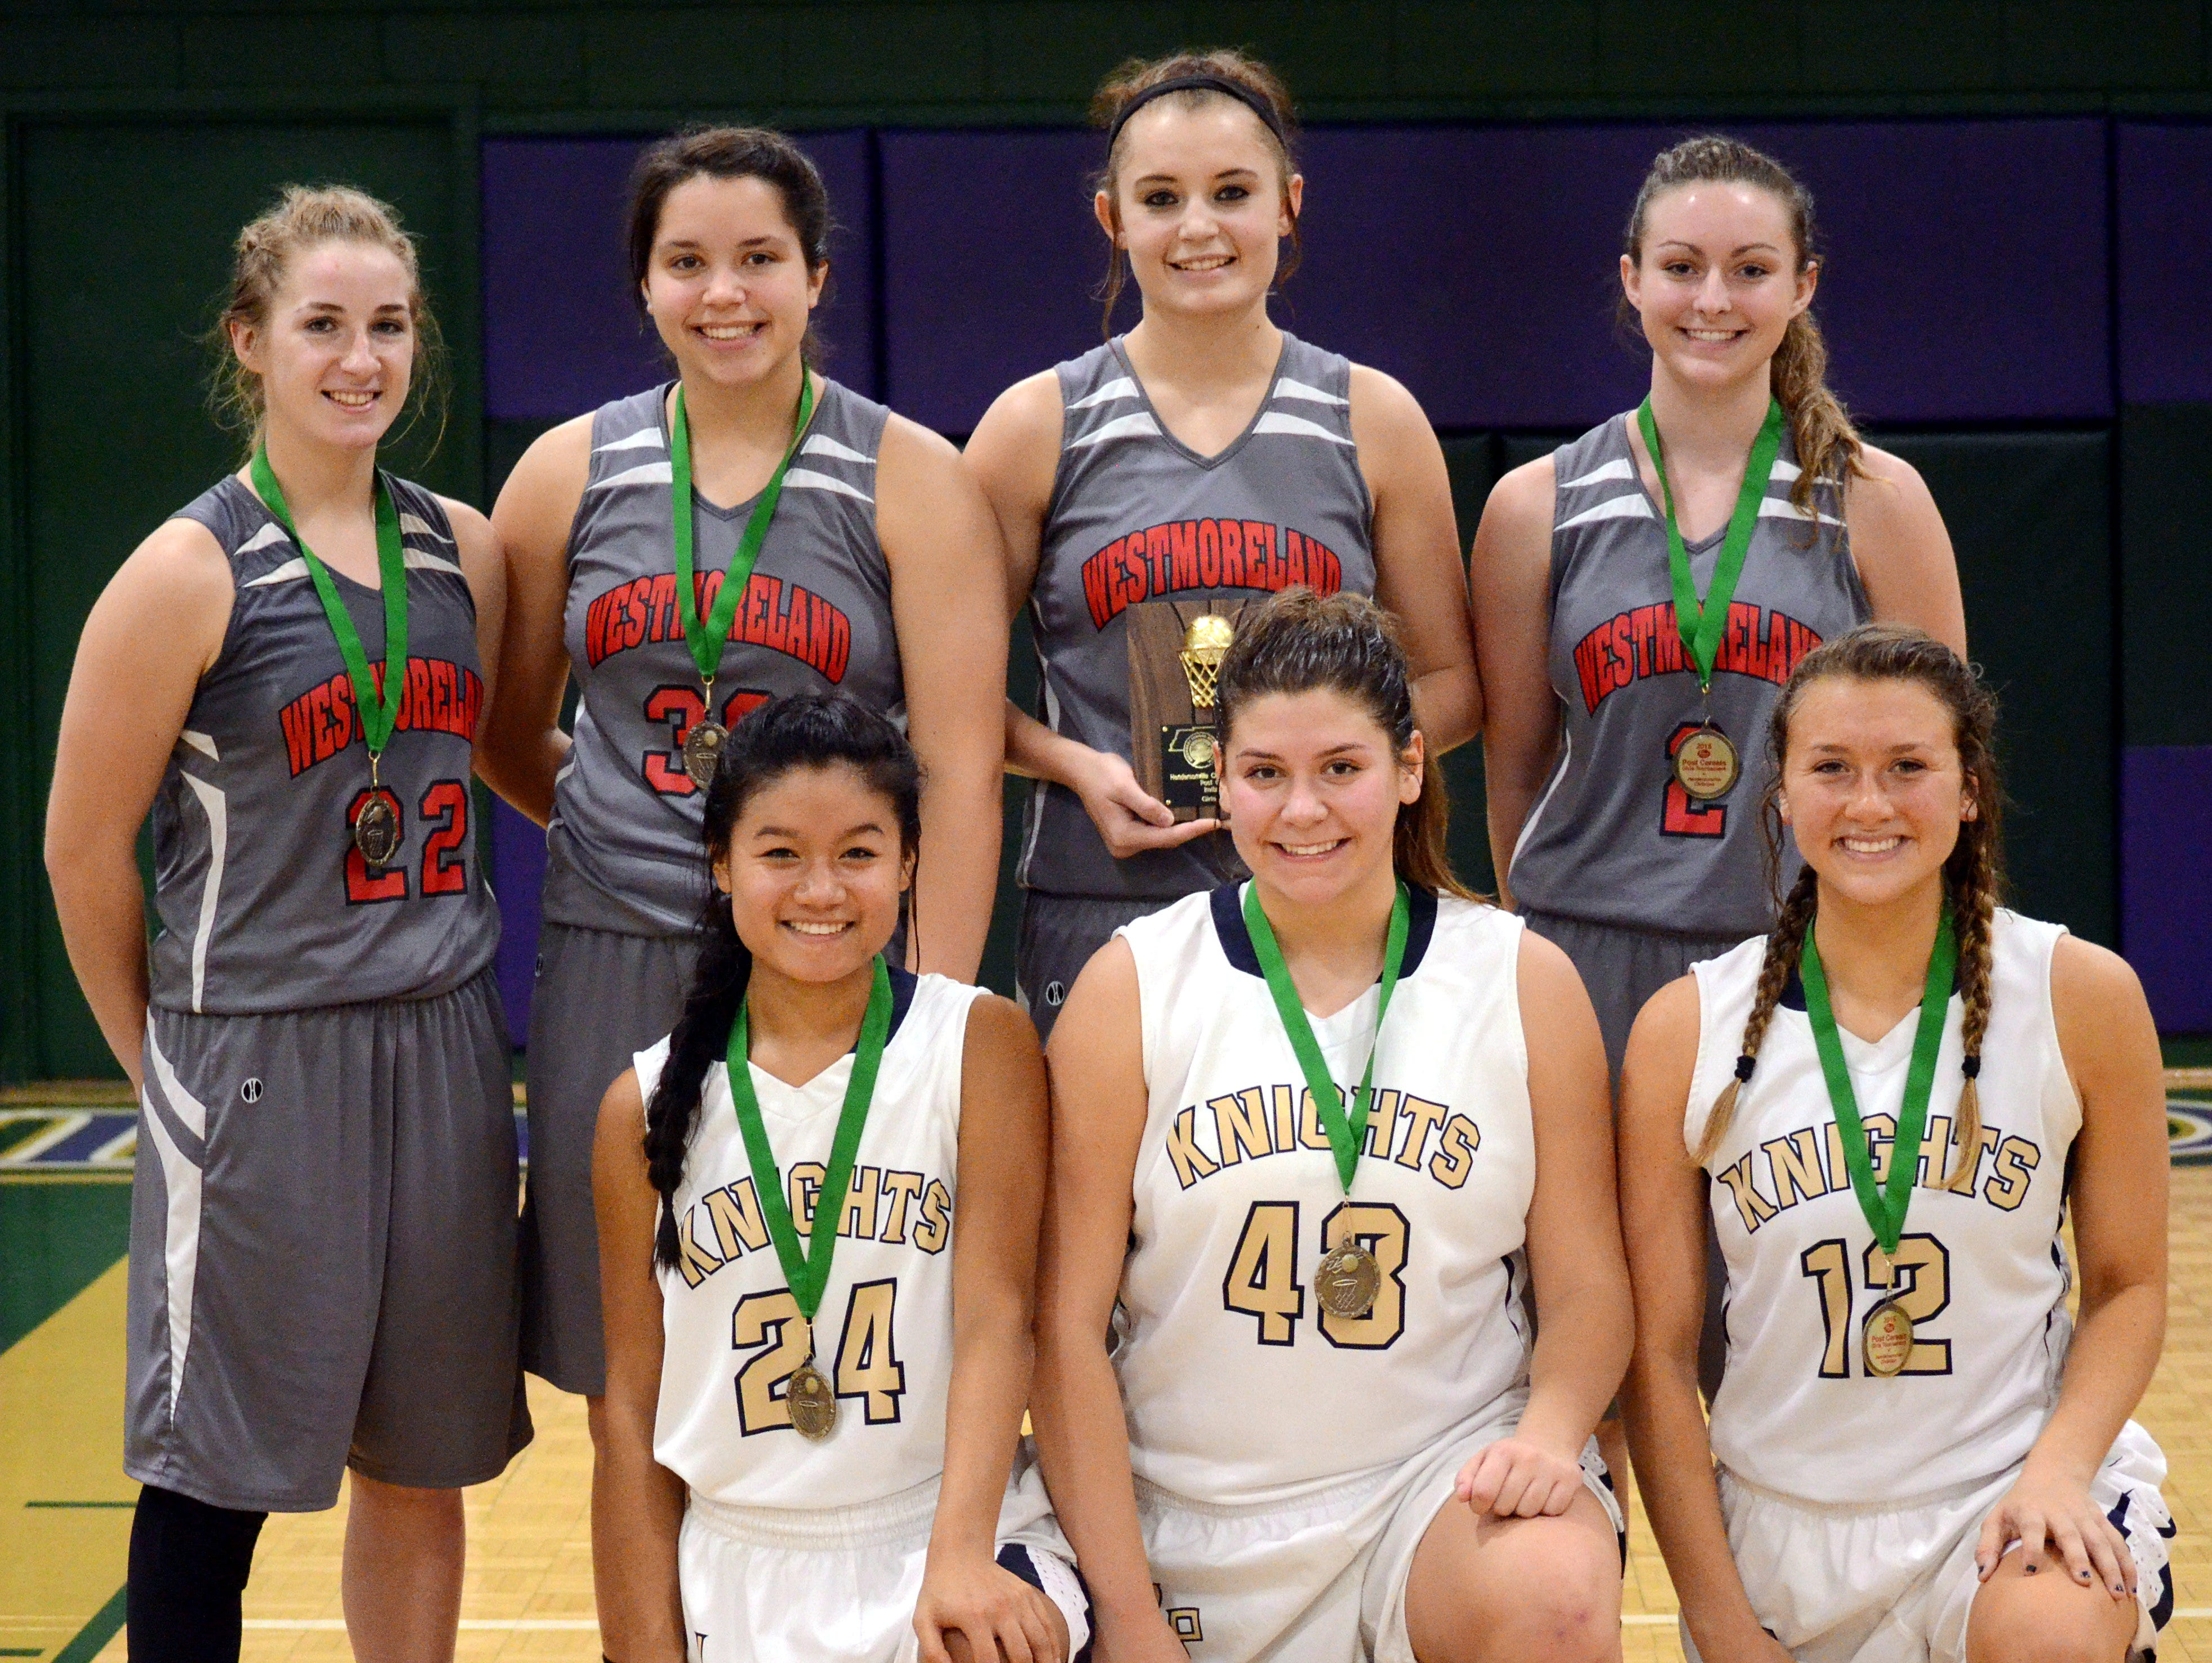 Included among the members of the Post Brand Cereal Girls All-Tournament Team include: (kneeling, L to R) Pope John Paul II High senior Mercedes Smith, Pope John Paul II senior Windee Johnson, Pope John Paul II senior Sophie Kolbe, (standing) Westmoreland senior Jesica Eppstein, Westmoreland junior Karley Smith, Westmoreland junior Kaitlyn Norman (most valuable player) and Westmoreland senior Haley Braswell.